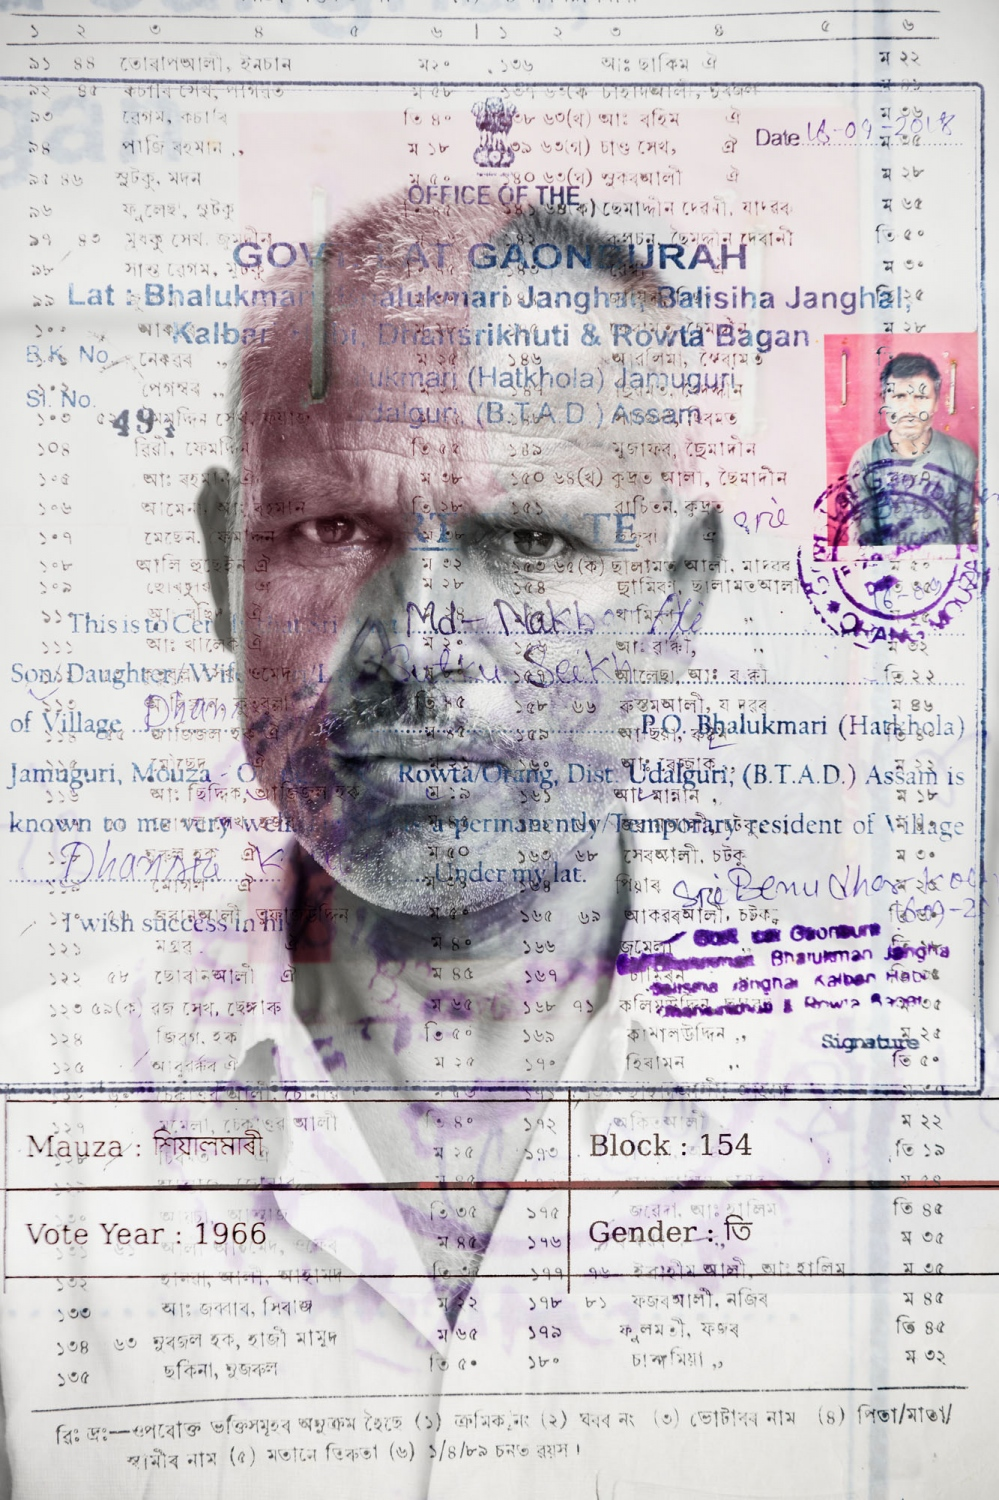 Nekbur Ali, 48 years old, was declared as a d-voter (doubtful voter) by the Election Commission without explanation. He has his parent's voter list from 1966 as well as a letter from the village head who confirms his identity.